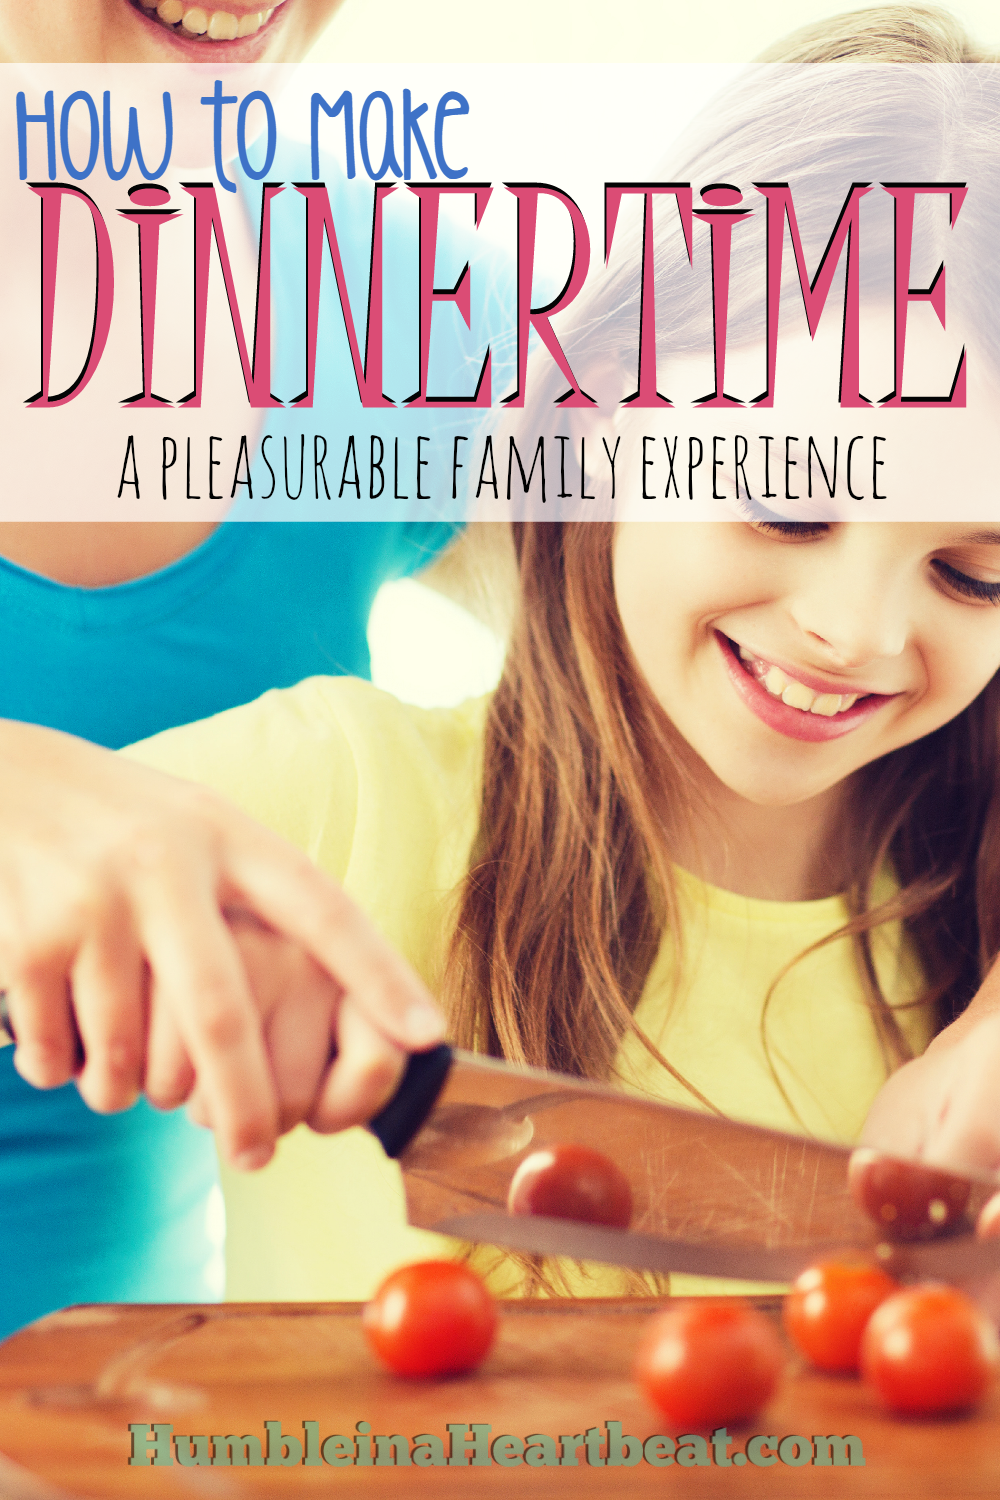 A relaxing and enjoyable family dinner starts in the kitchen. If you are taking time to enjoy the cooking part, you will start to have a wonderful experience at the dinner table, even with kids!